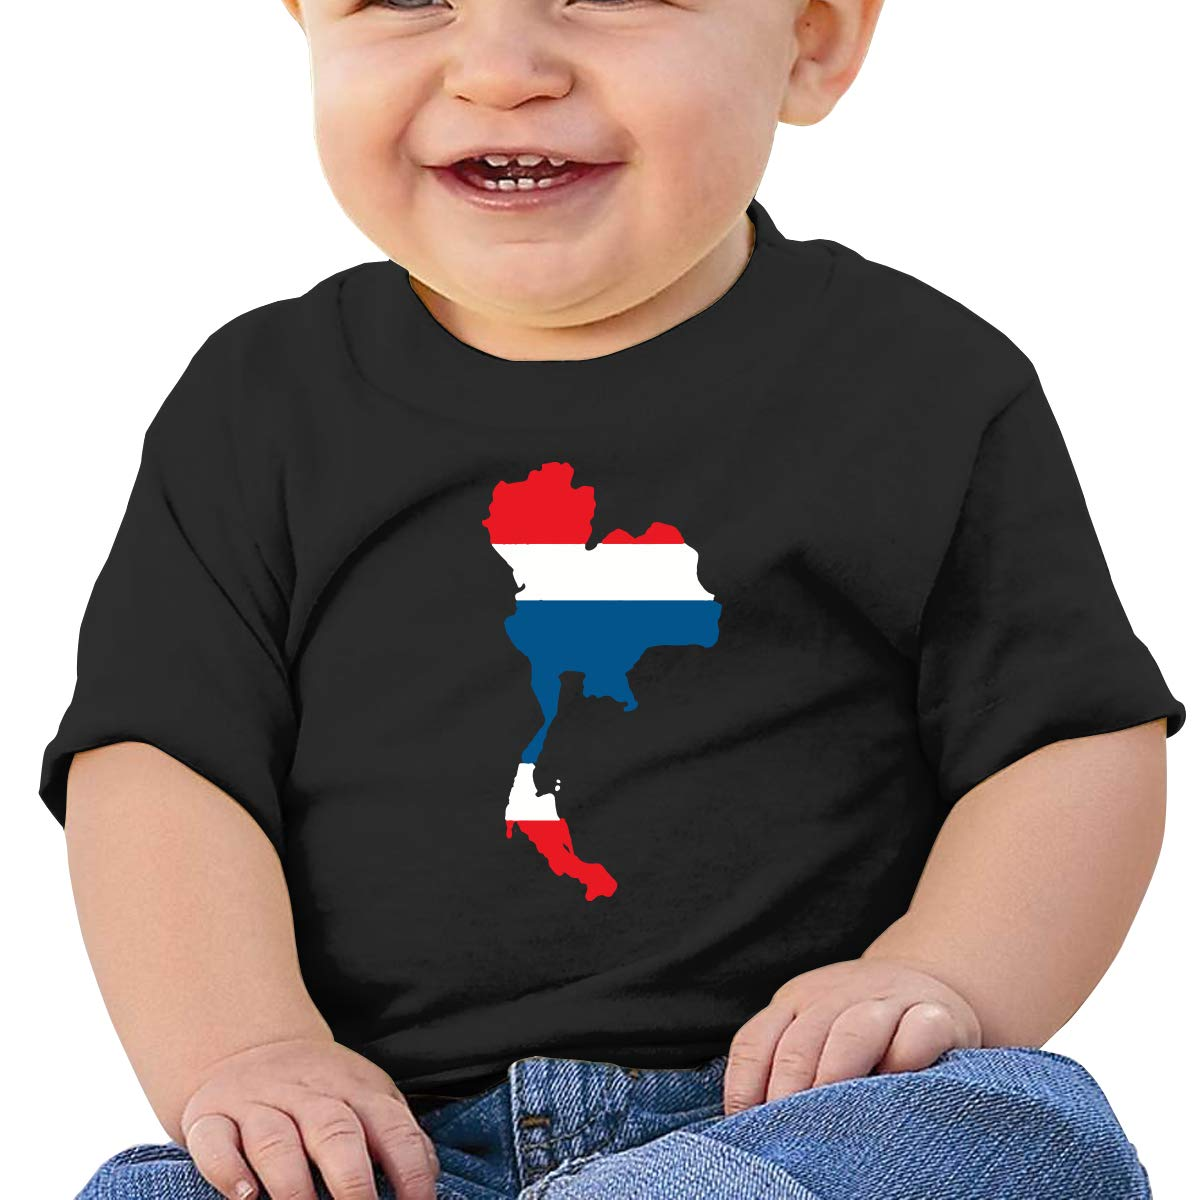 Thailand Country with Thai Flag Newborn Baby Newborn Short Sleeve T Shirts 6-24 Month Soft Tops